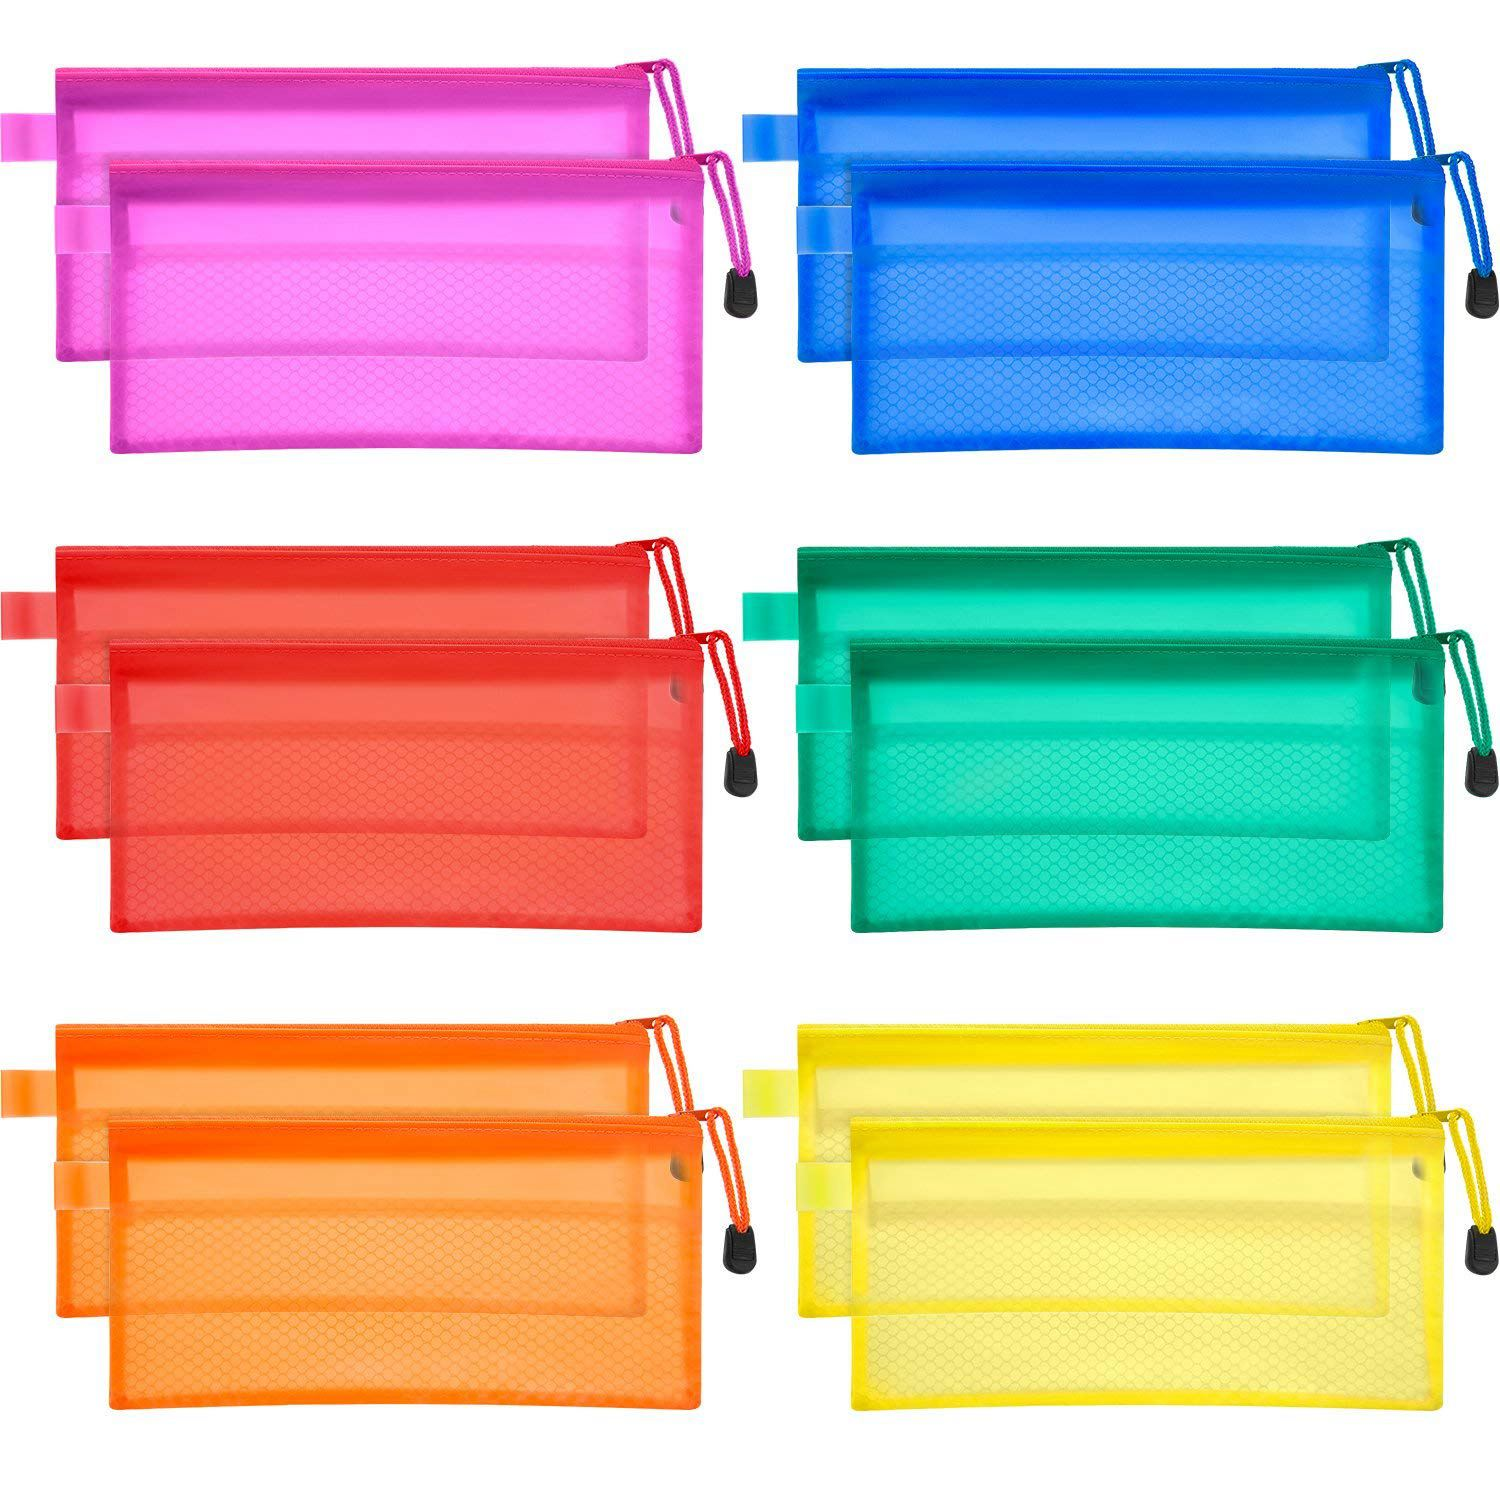 12 Pieces 6 Colors Pencil Pouch Zipper File Bags Waterproof Double Layer For Pen Bag Cosmetics Supplies Travel Accessories